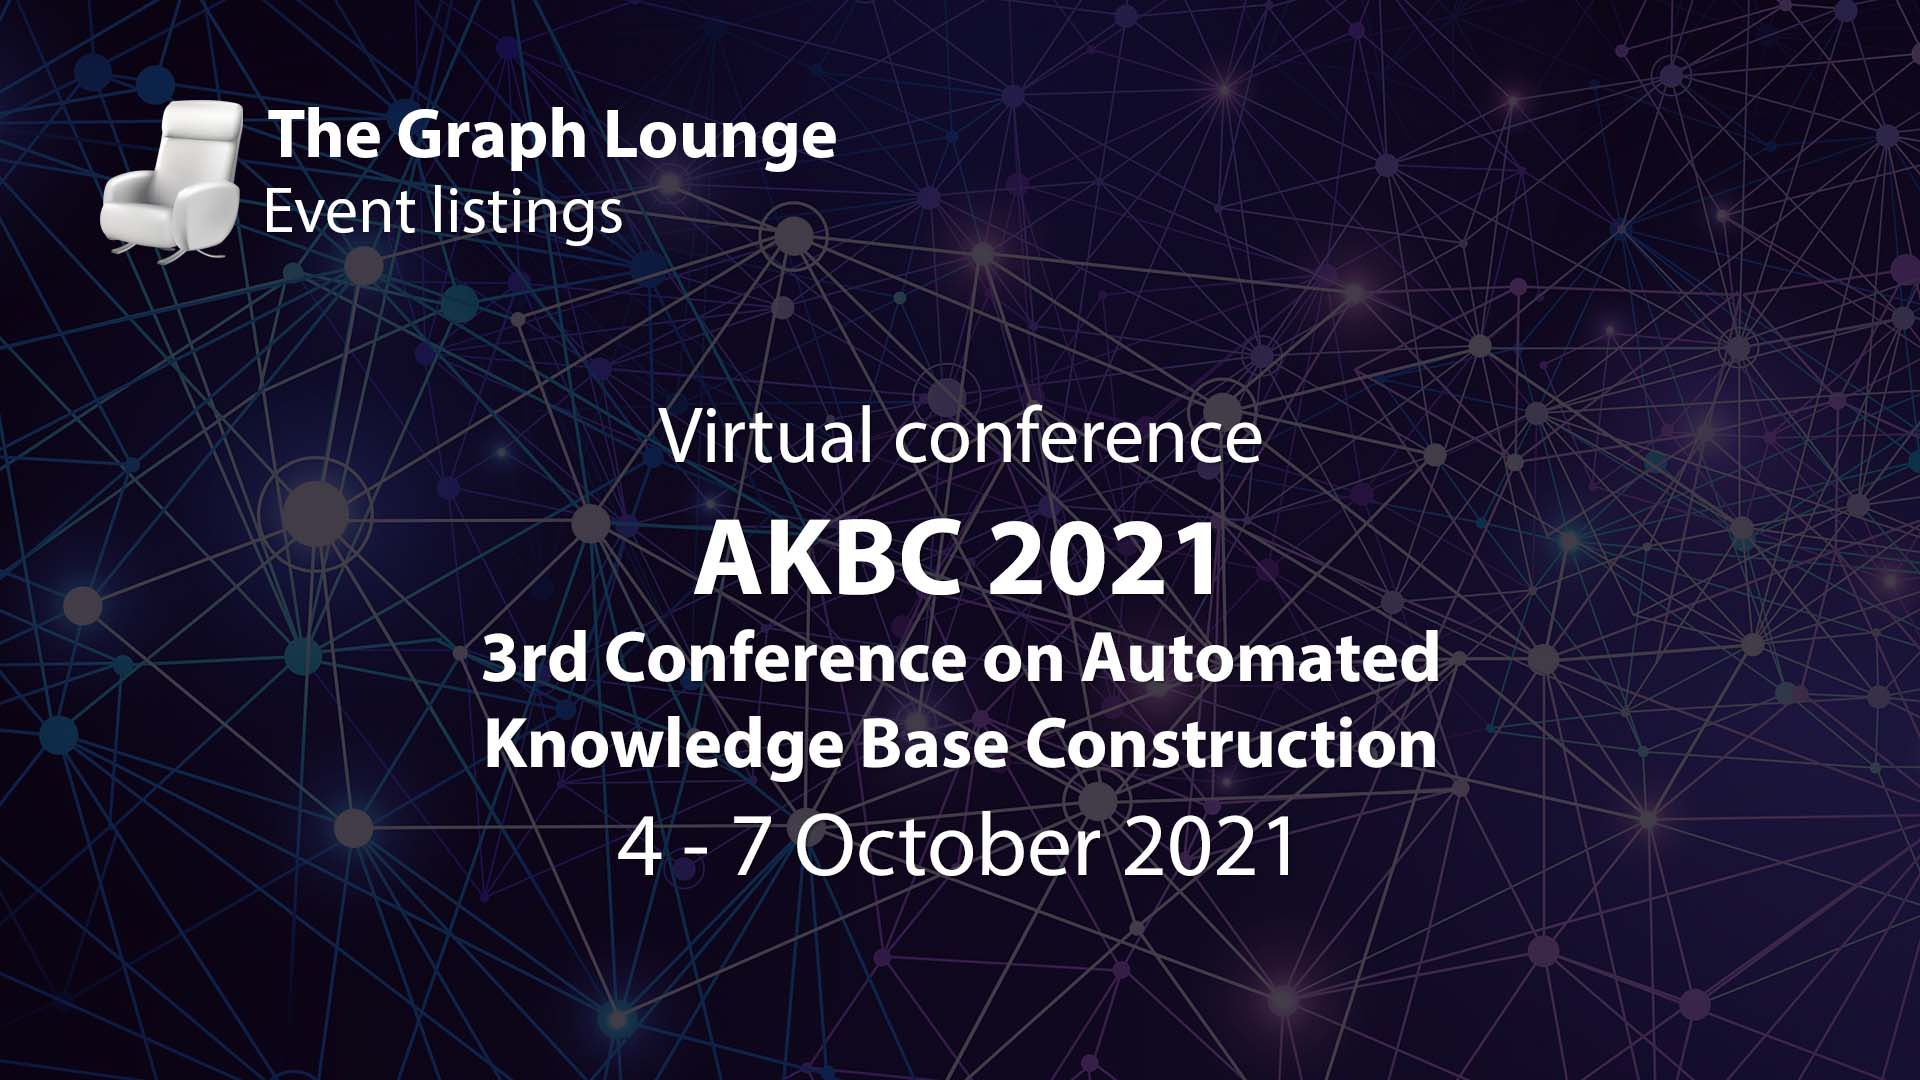 AKBC 2021 (3rd Conference on Automated Knowledge Base Construction)